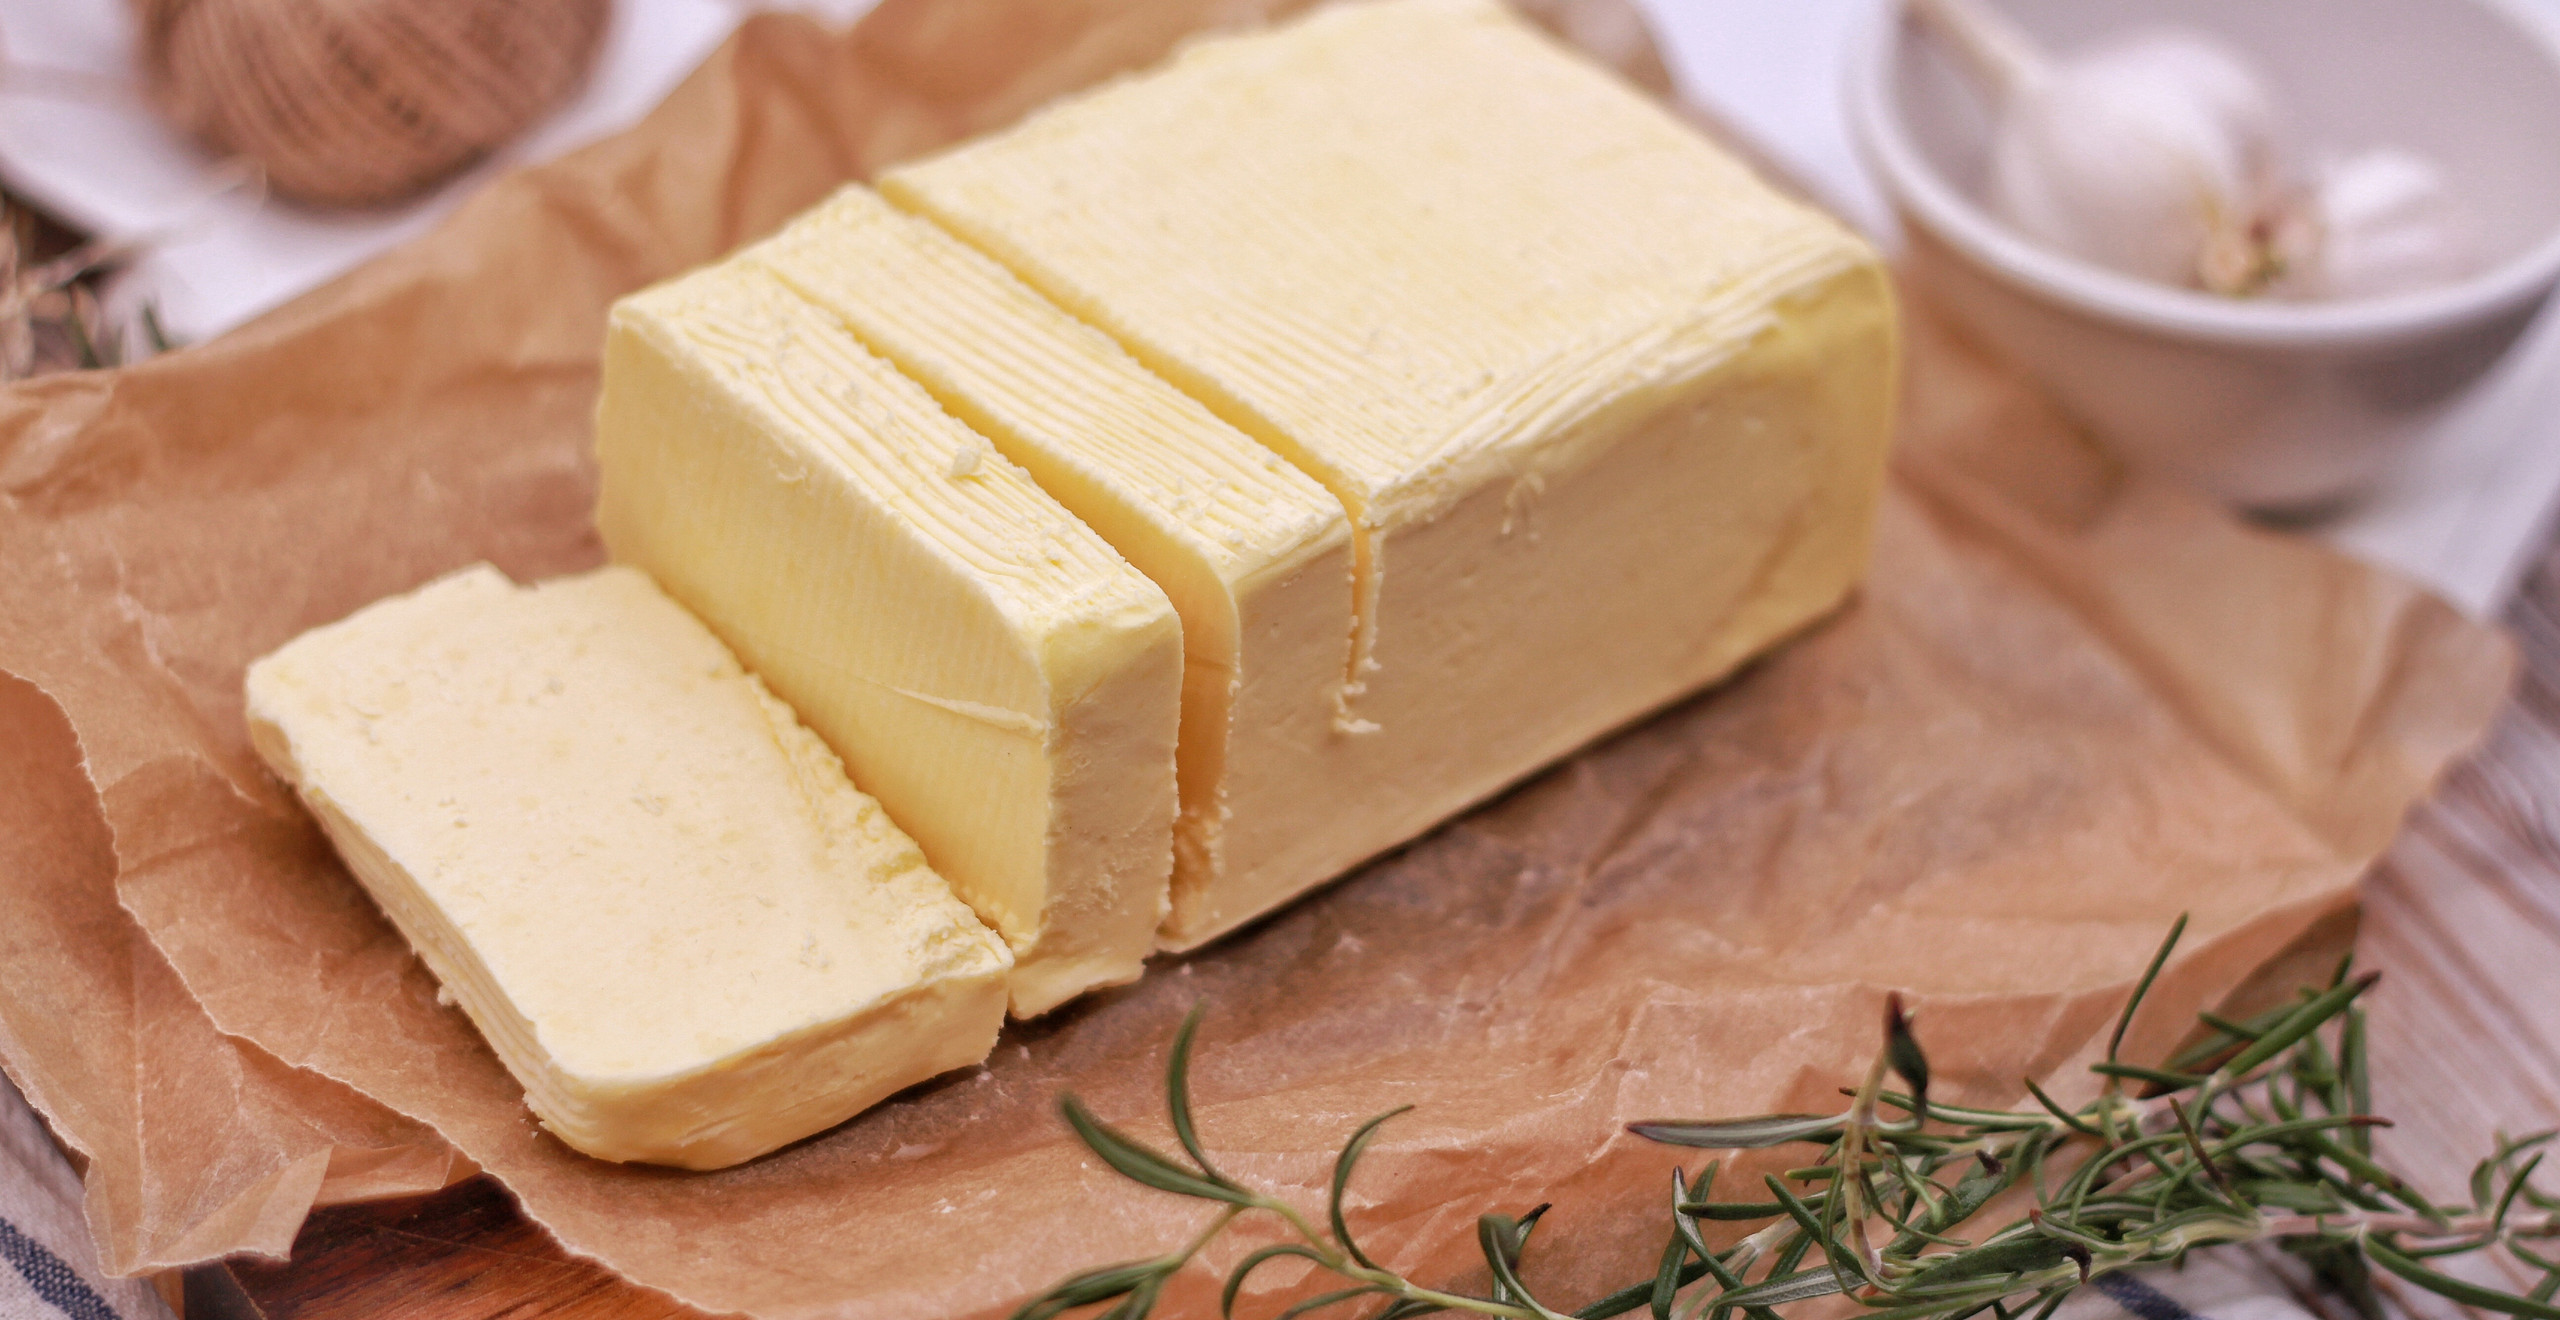 Butter is good source of vitamin D